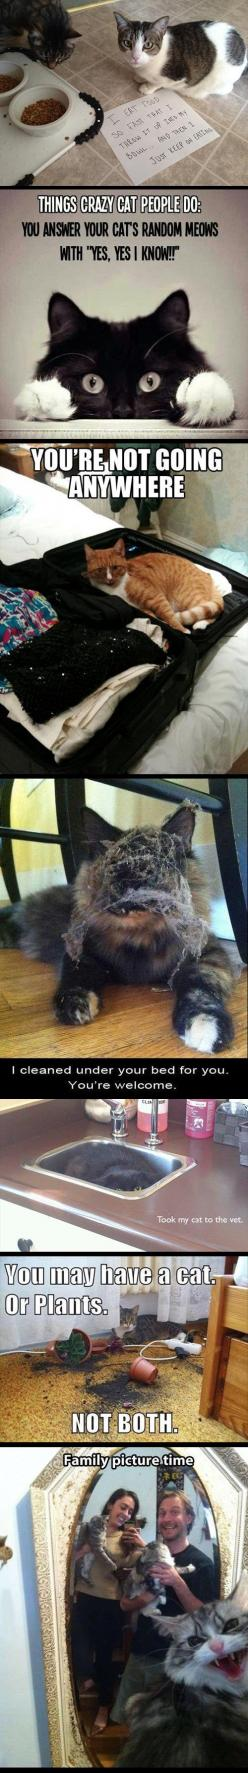 Cat eating in the bowl...: Cat People, Crazy Cats, Kitty Cats, Funny Cats, Cat Owners, Car Crash, Cat Lady